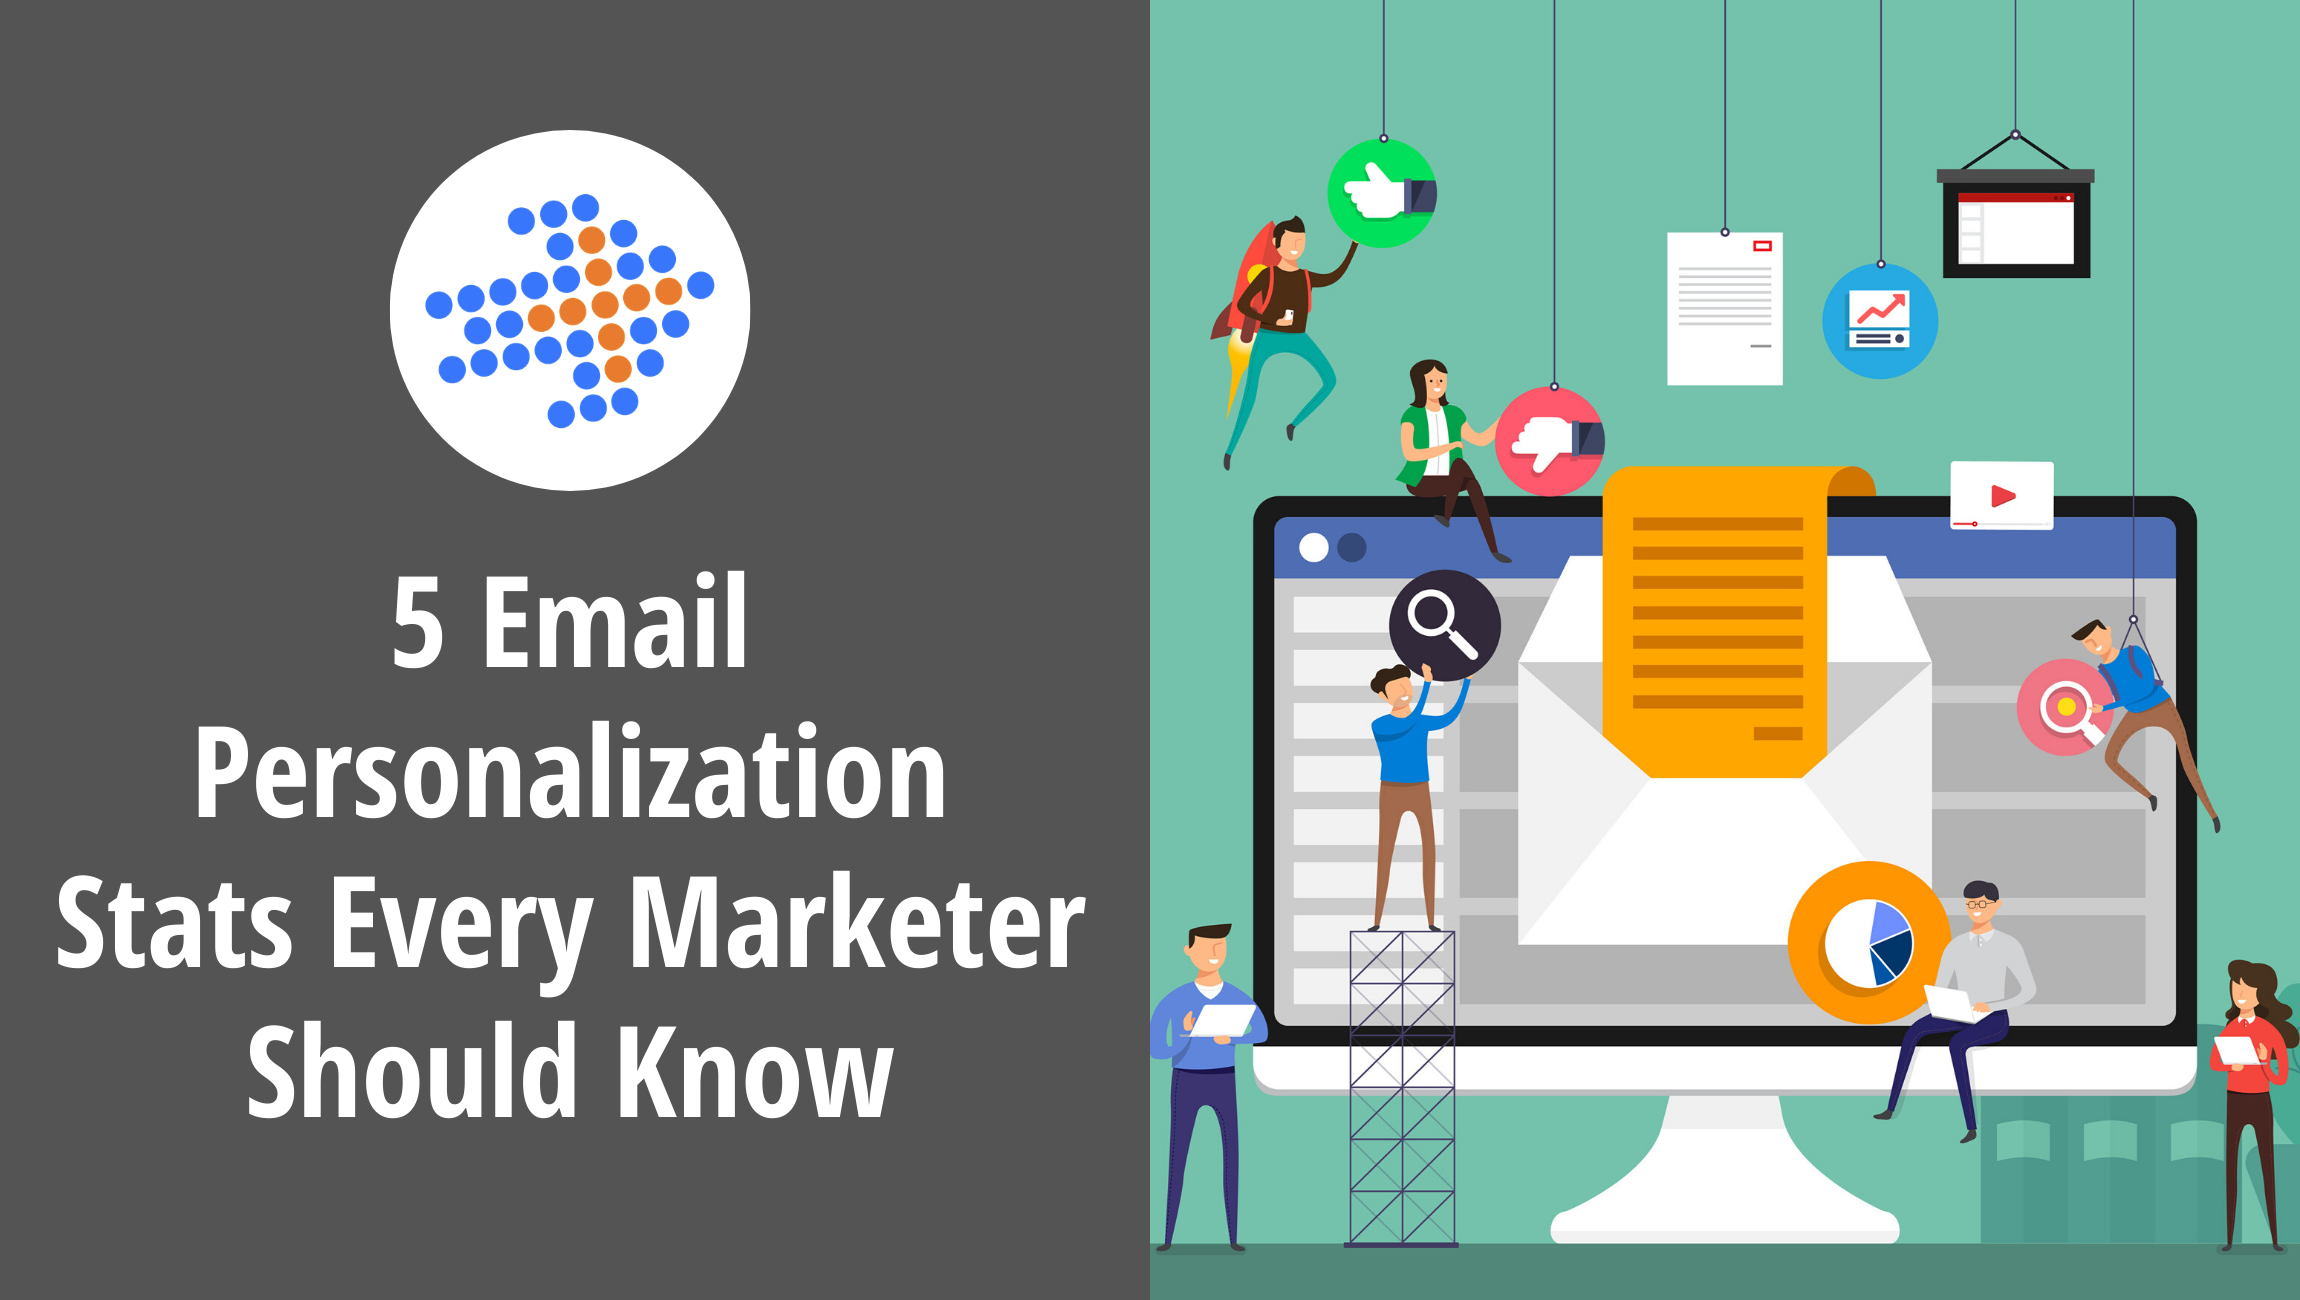 5 Email Personalization Stats Every Marketer Should Know